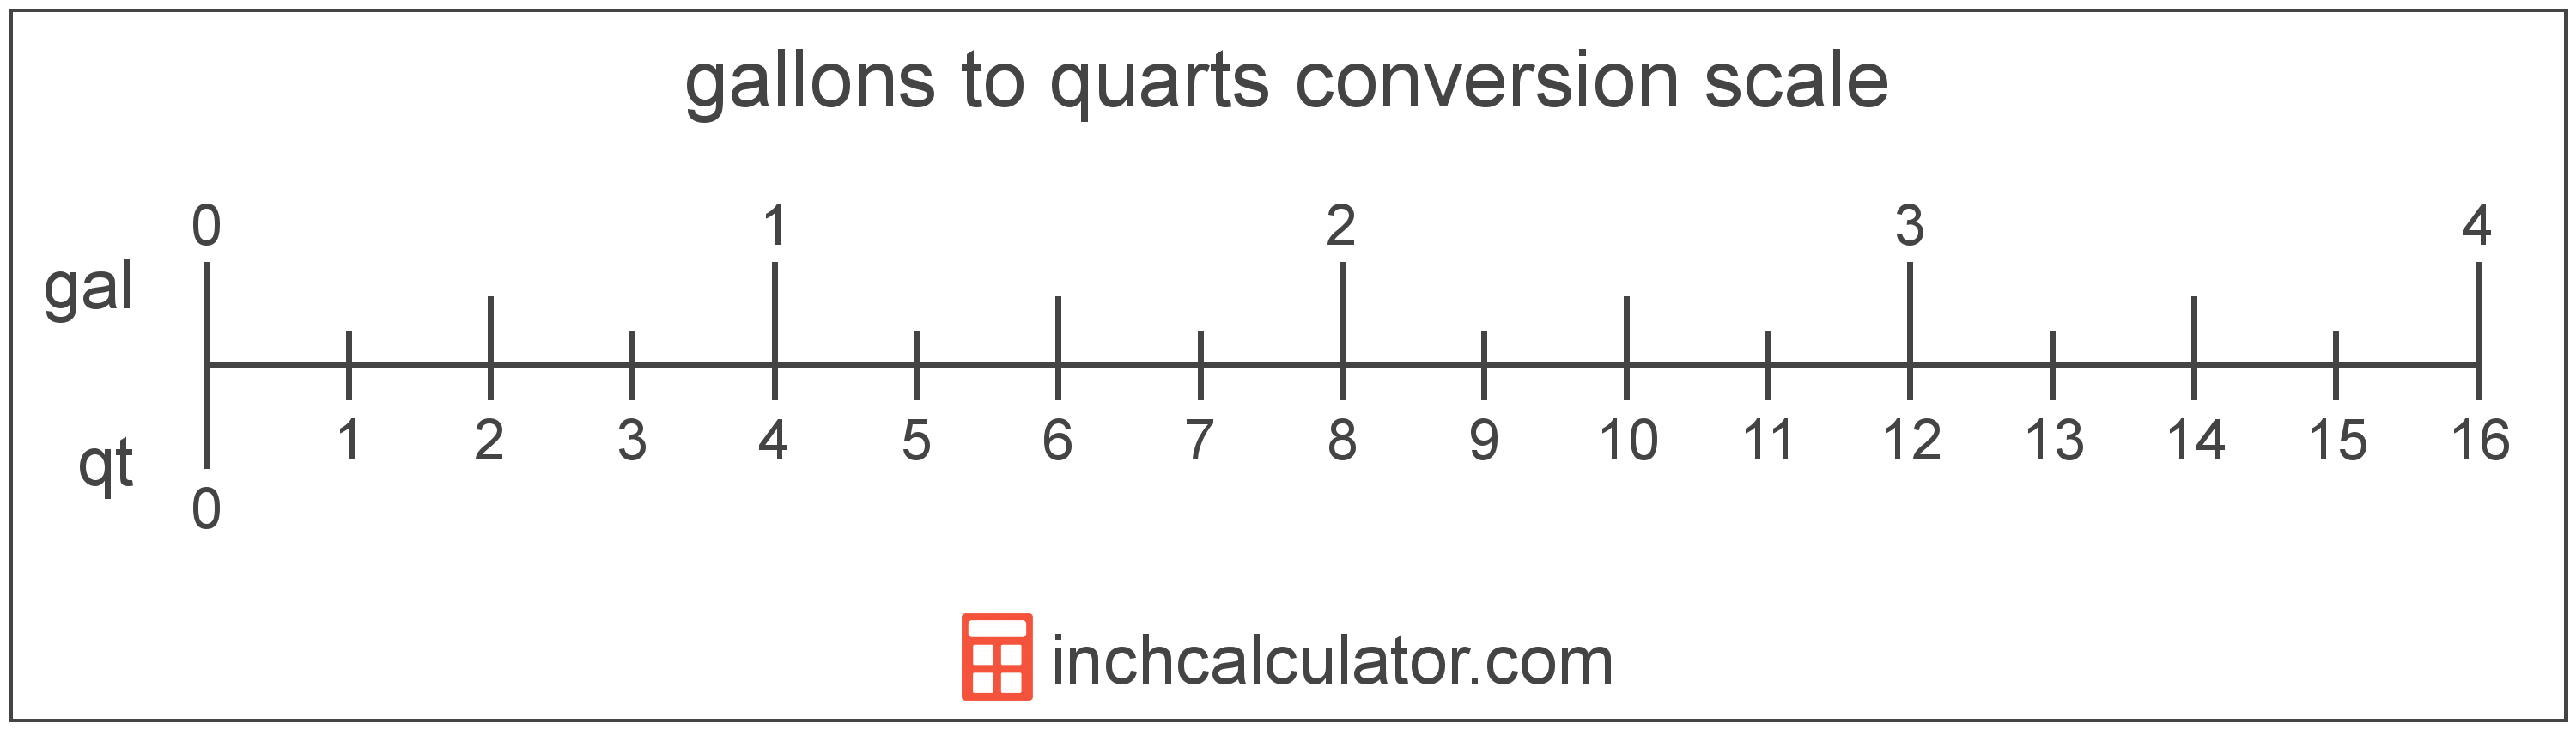 Convert Quarts to Gallons - (qt to gal) - Inch Calculator